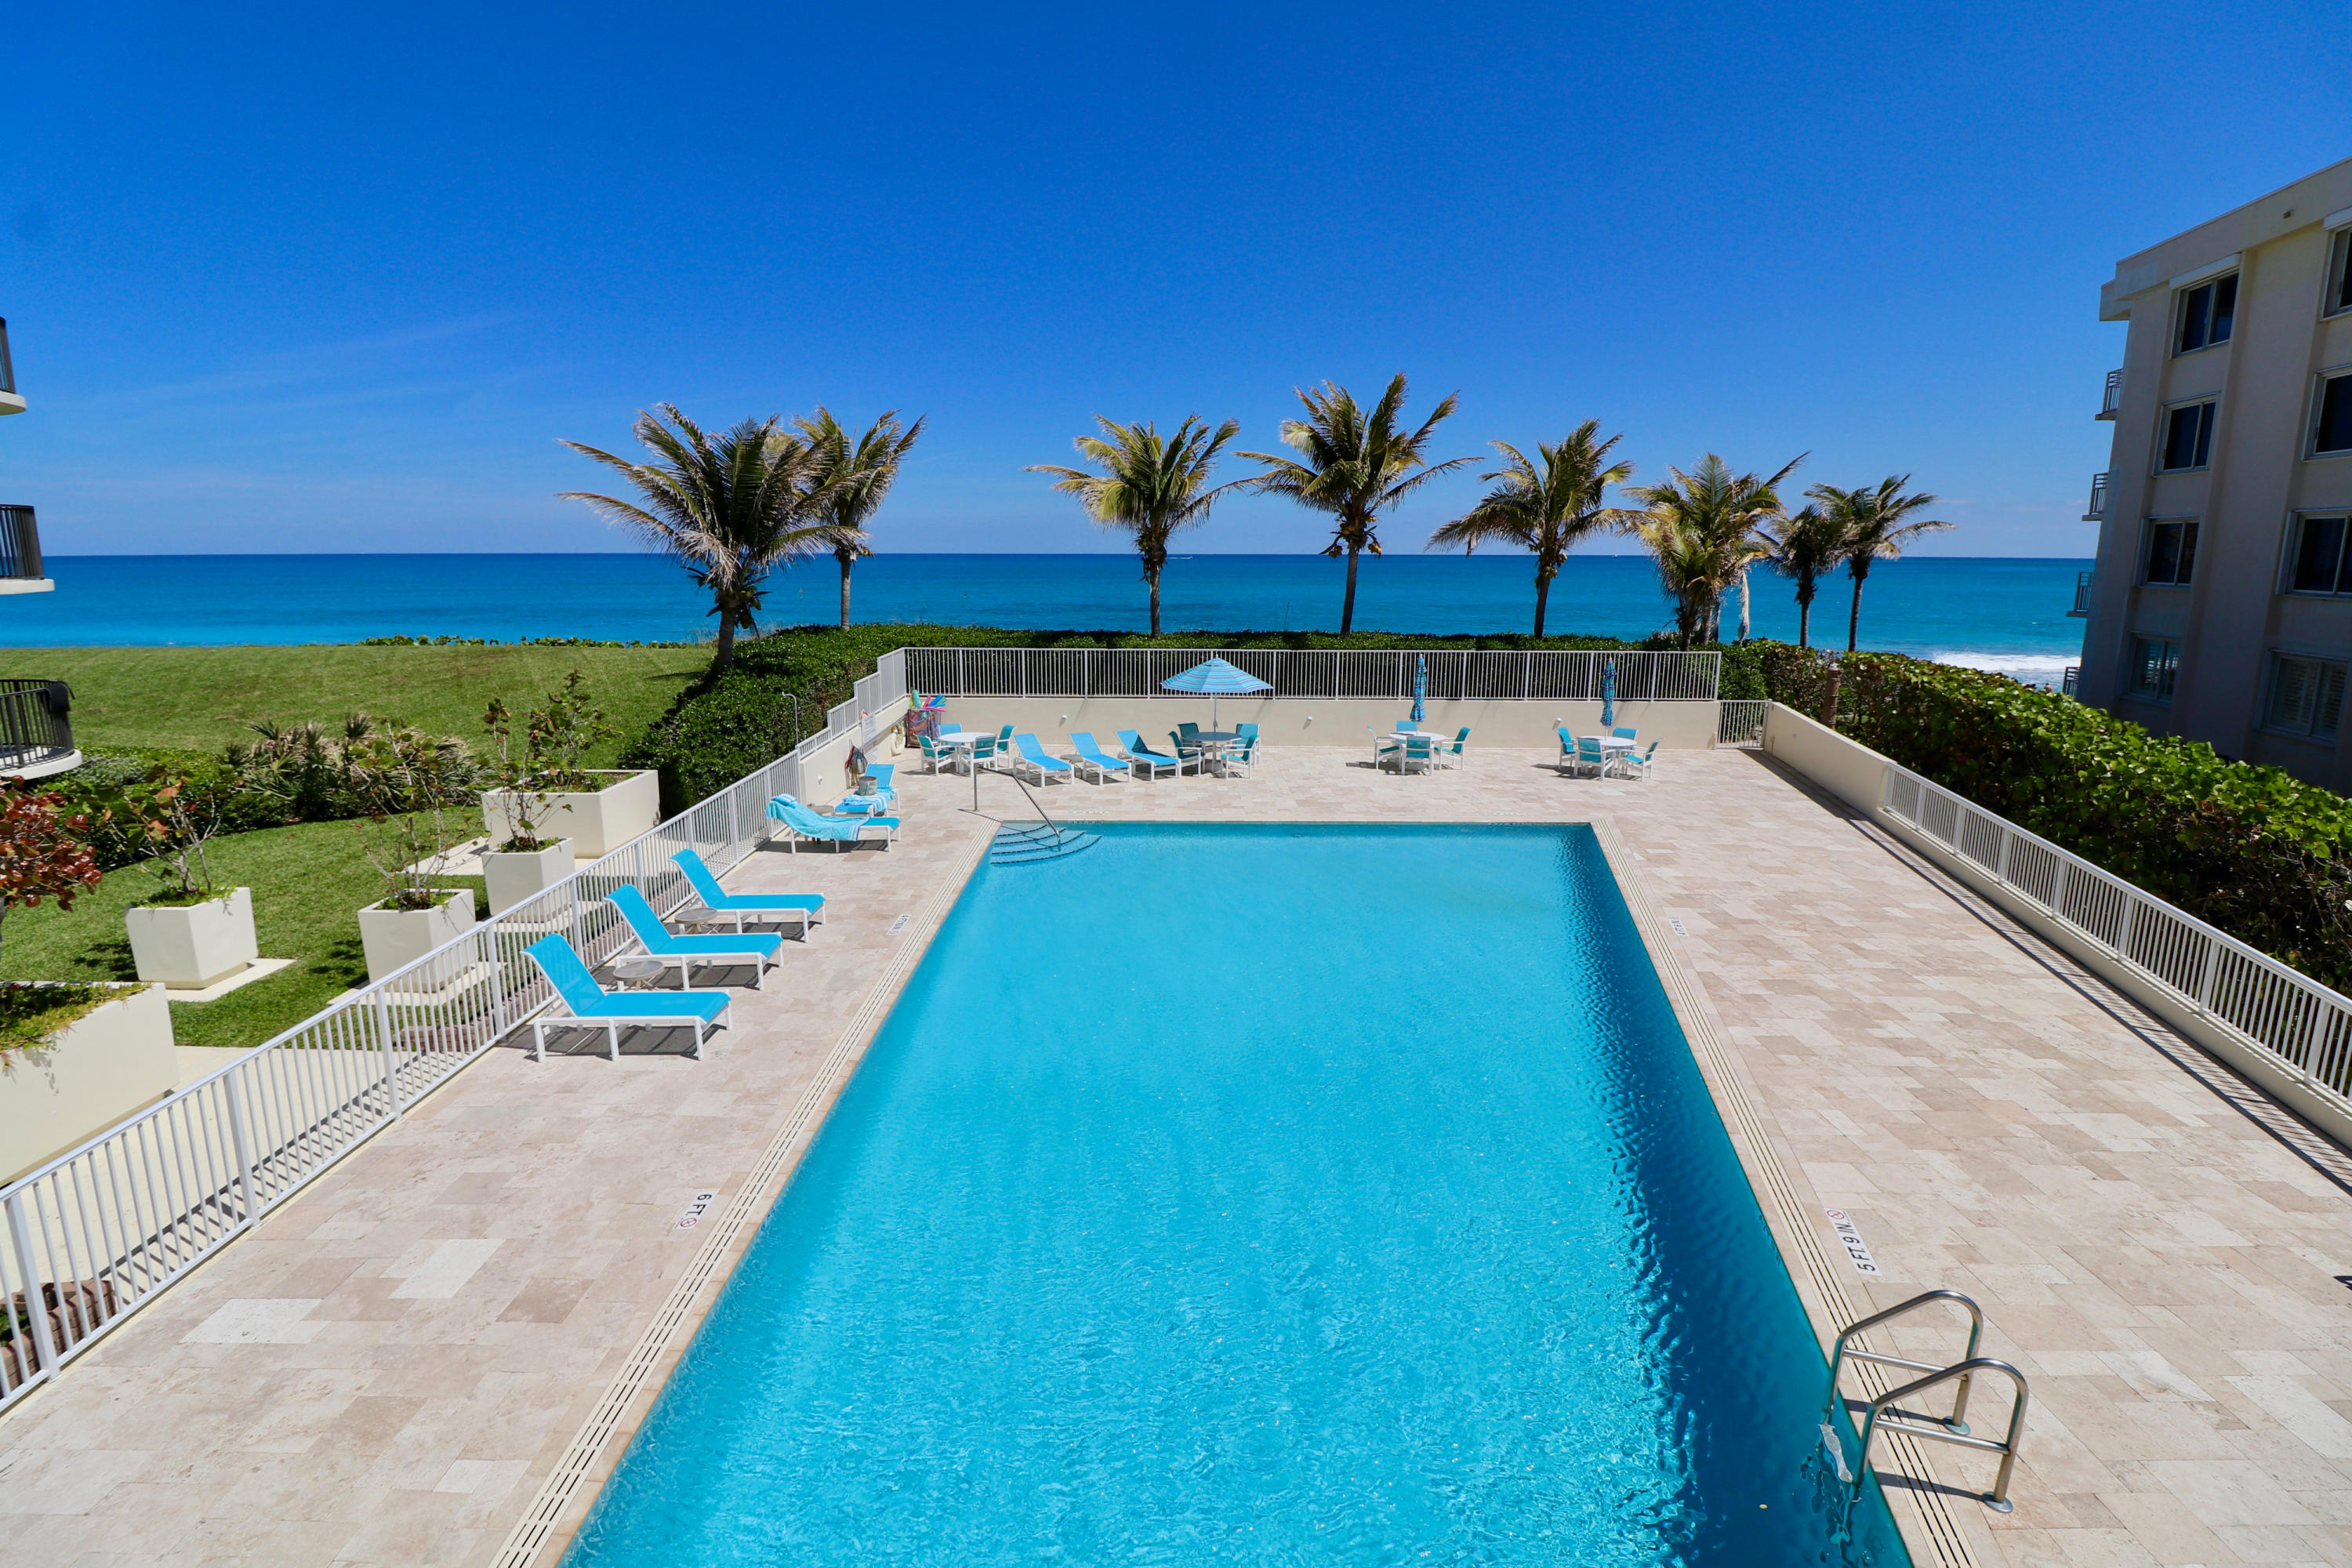 TEQUESTA TOWERS REALTY